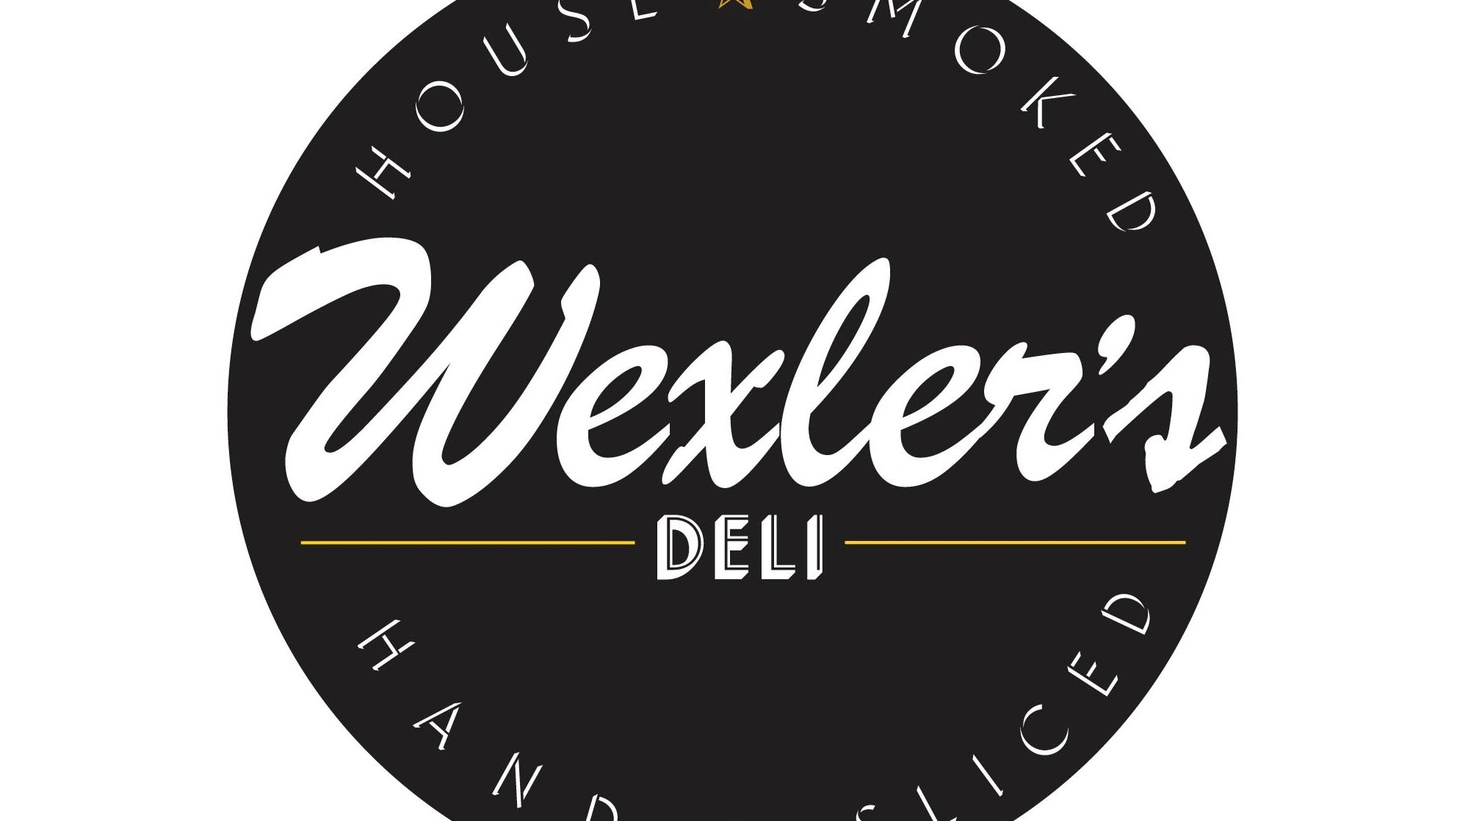 Jonathan Gold reviews Wexler's Deli, one of the several new stands to hit Grand Central Market this year.